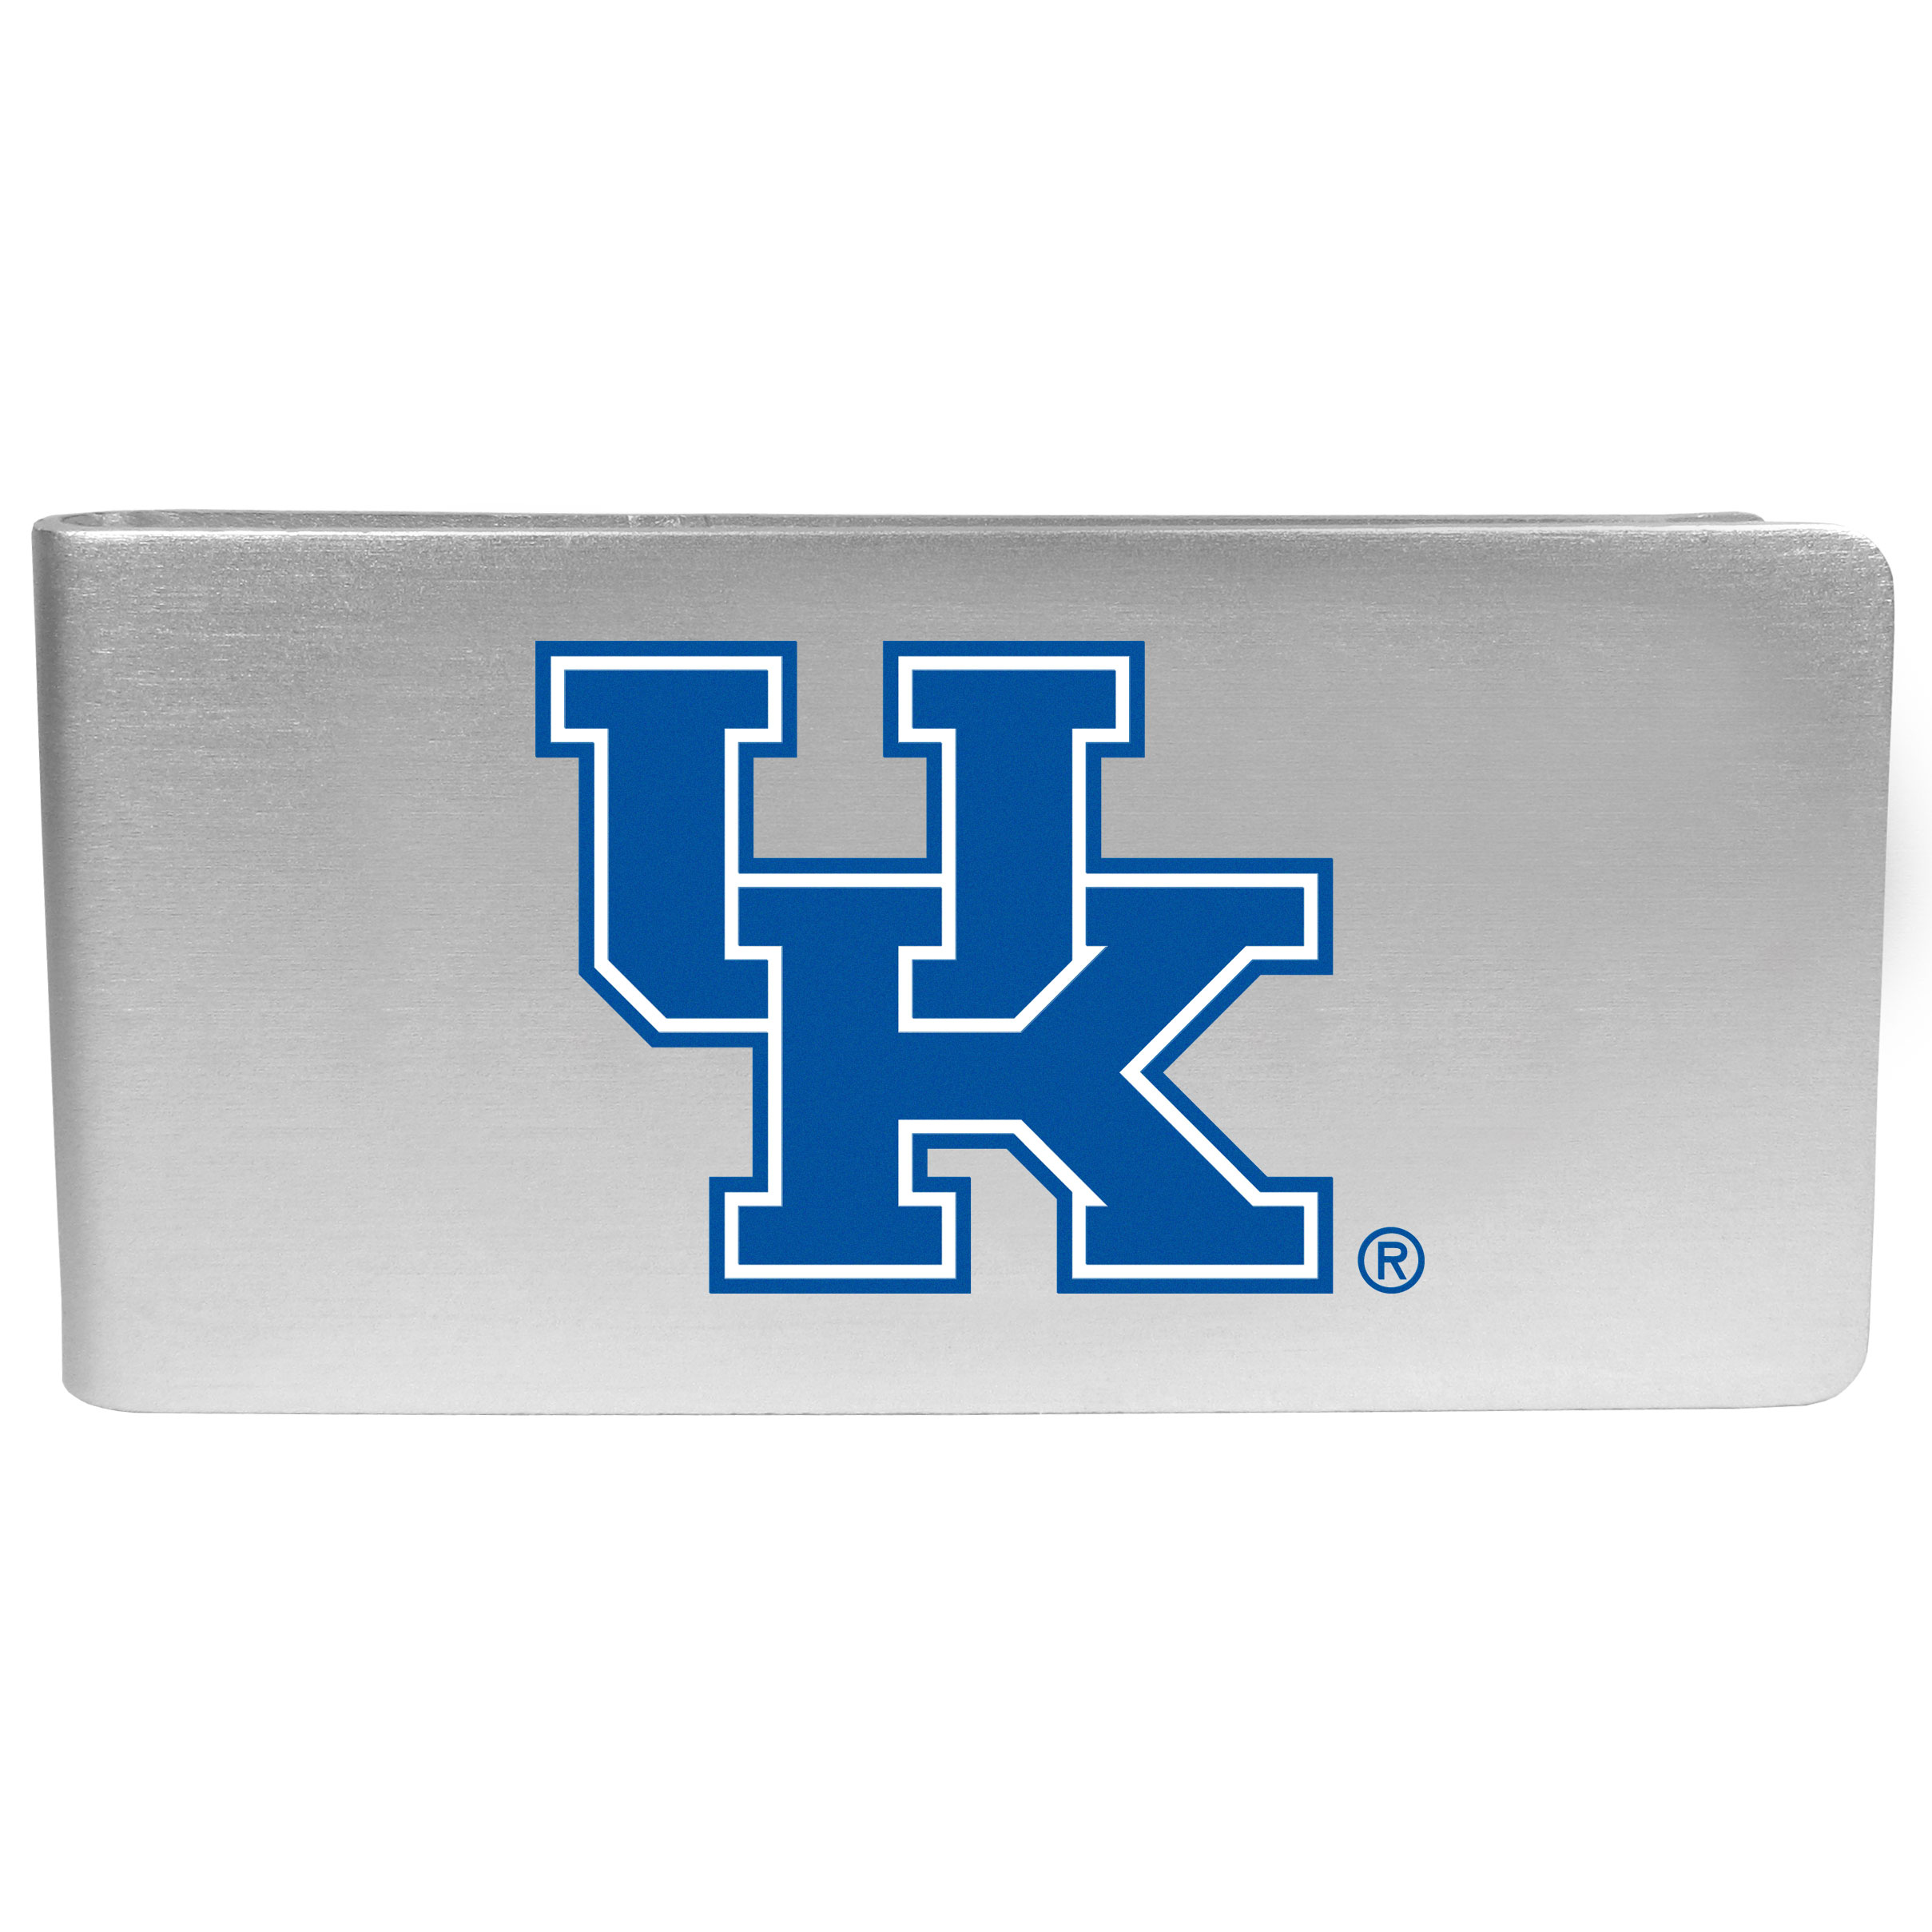 Kentucky Wildcats Logo Money Clip - Our brushed metal money clip has classic style and functionality. The attractive clip features the Kentucky Wildcats logo expertly printed on front.